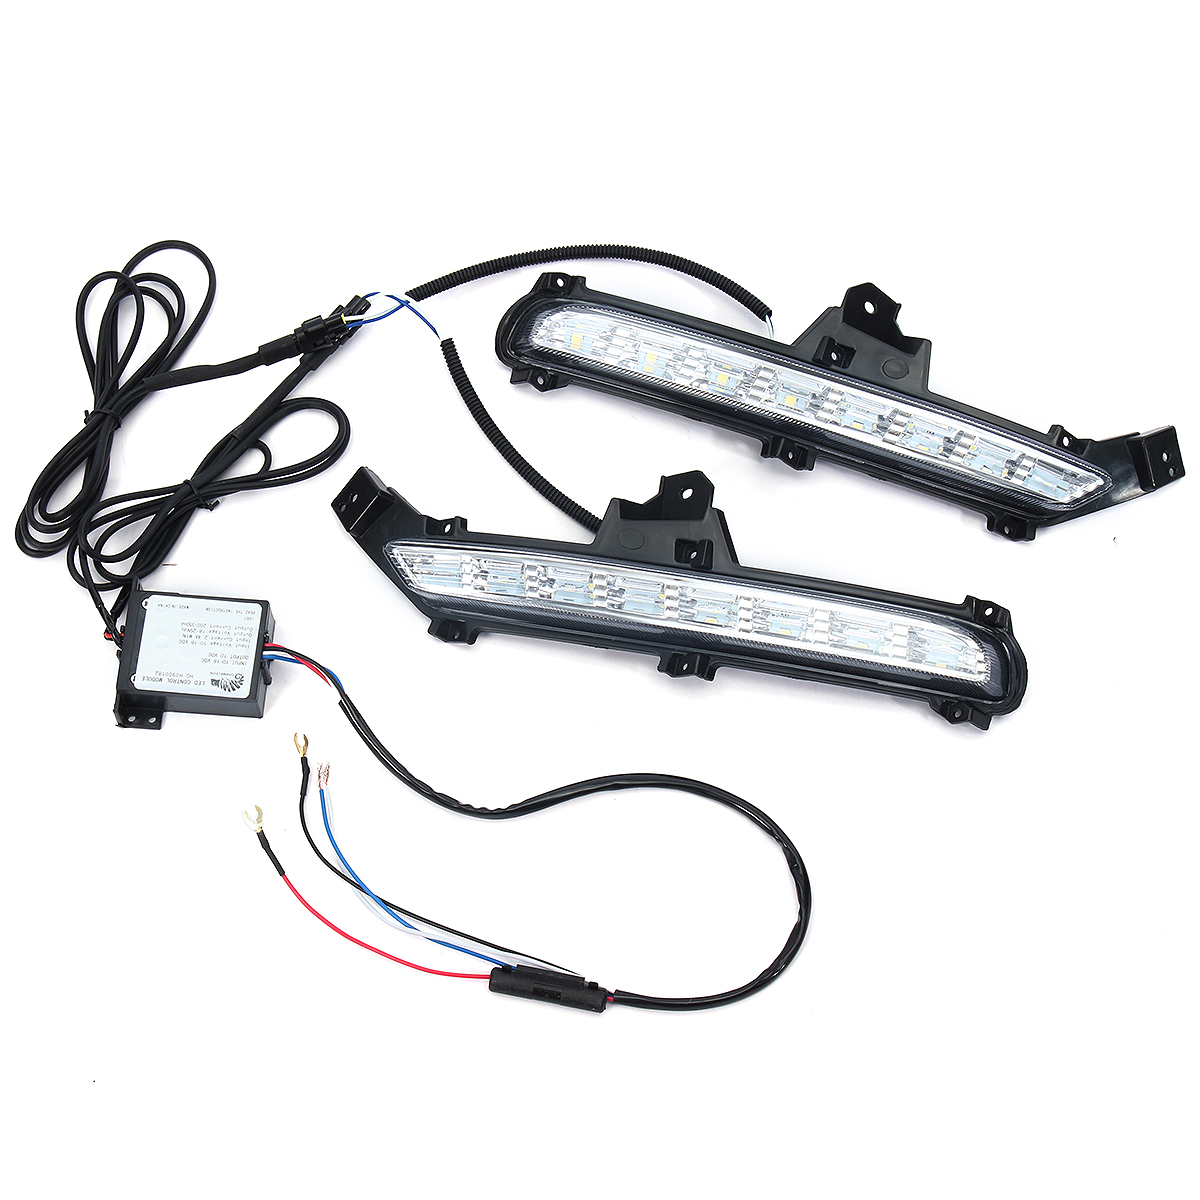 1 Pair Car LED Daytime Running Lights 6000K DRL led Car light Front Fog Lamp 12V for KIA RIO K2 2015- 2017 цены